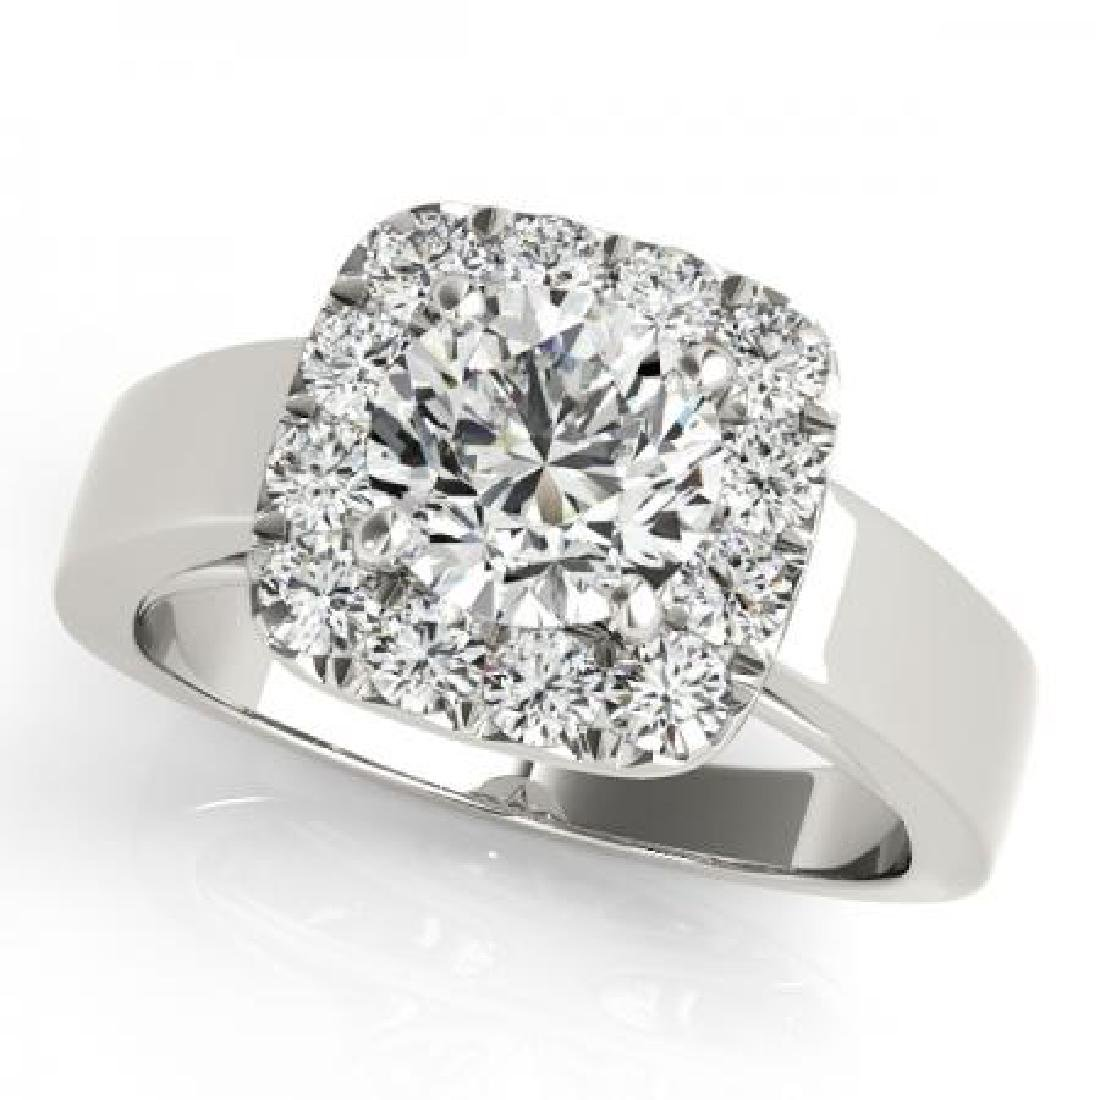 CERTIFIED PLATINUM 1.08 CT G-H/VS-SI1 DIAMOND HALO ENGA